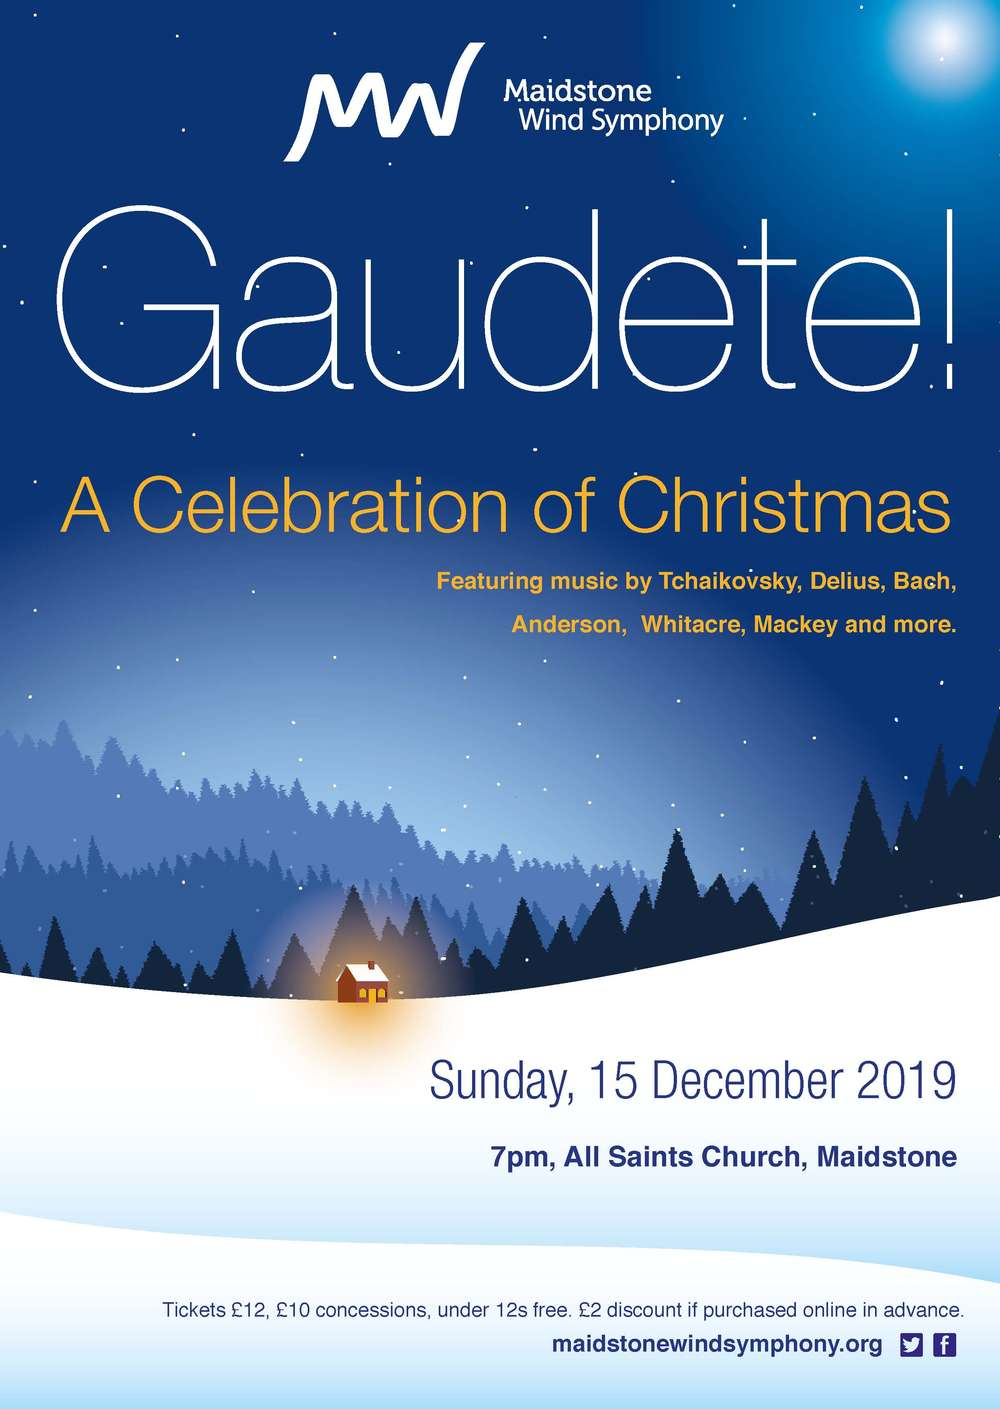 Gaudete! Concert foreword by Sam Willsmore